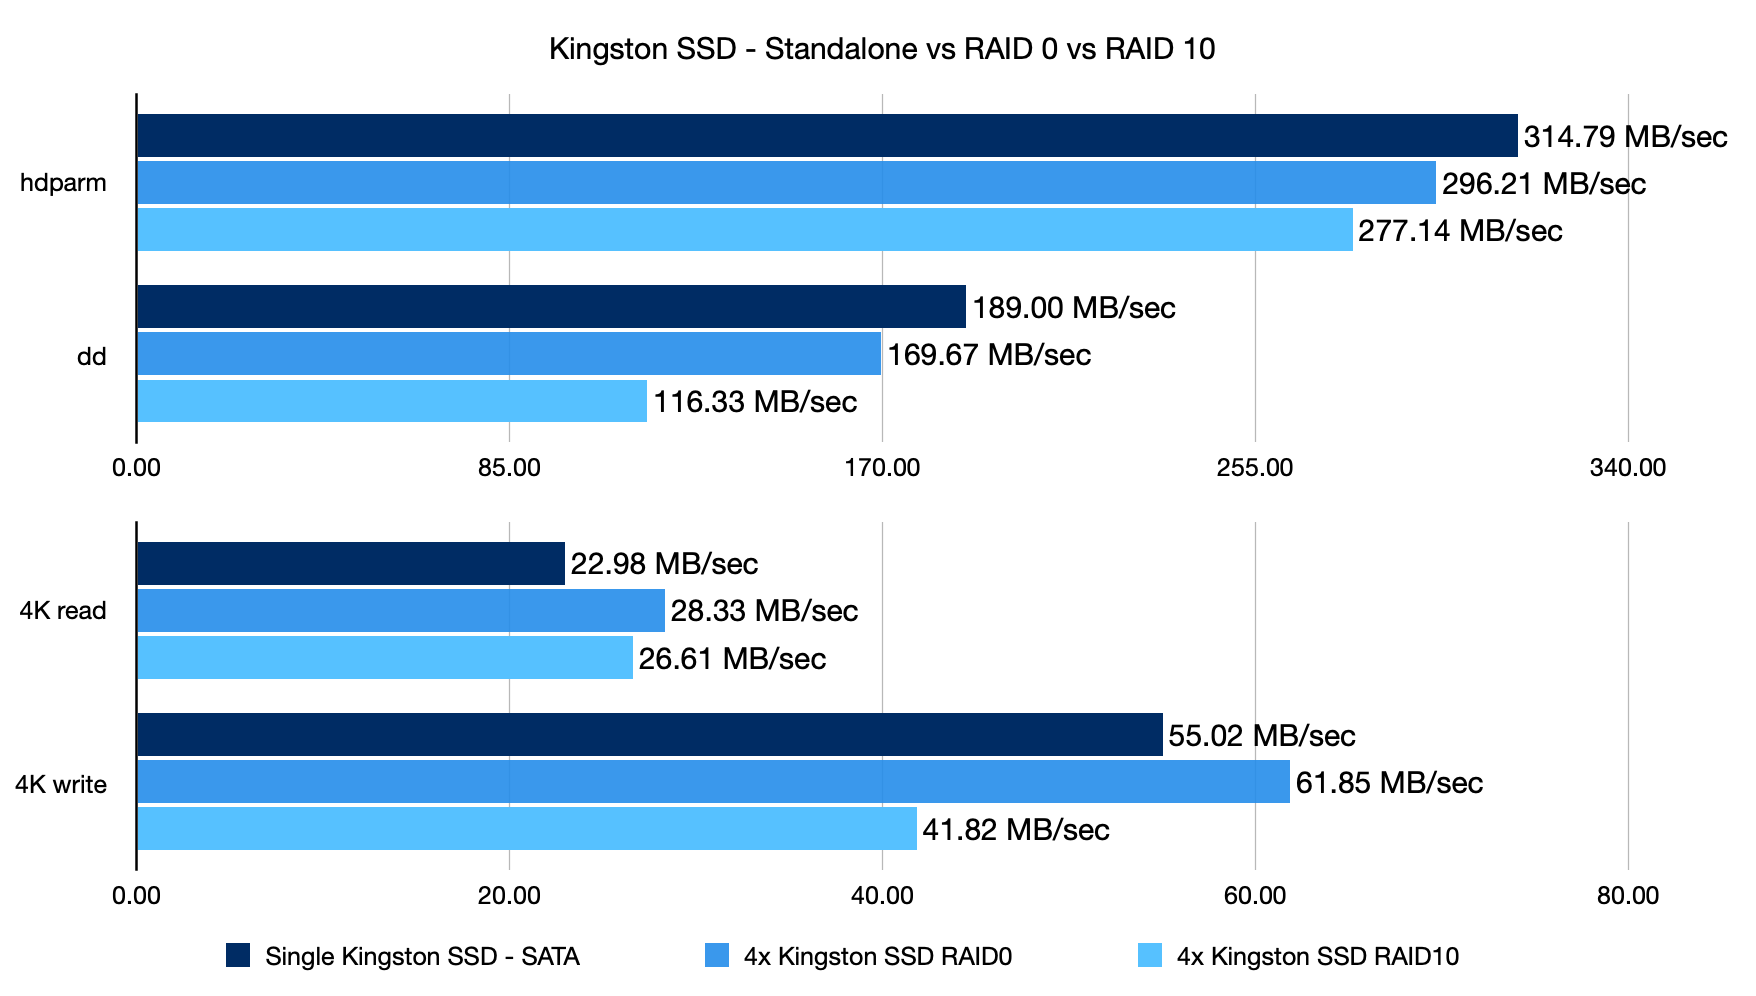 Kingston SSD standalone vs RAID 0 vs RAID 10